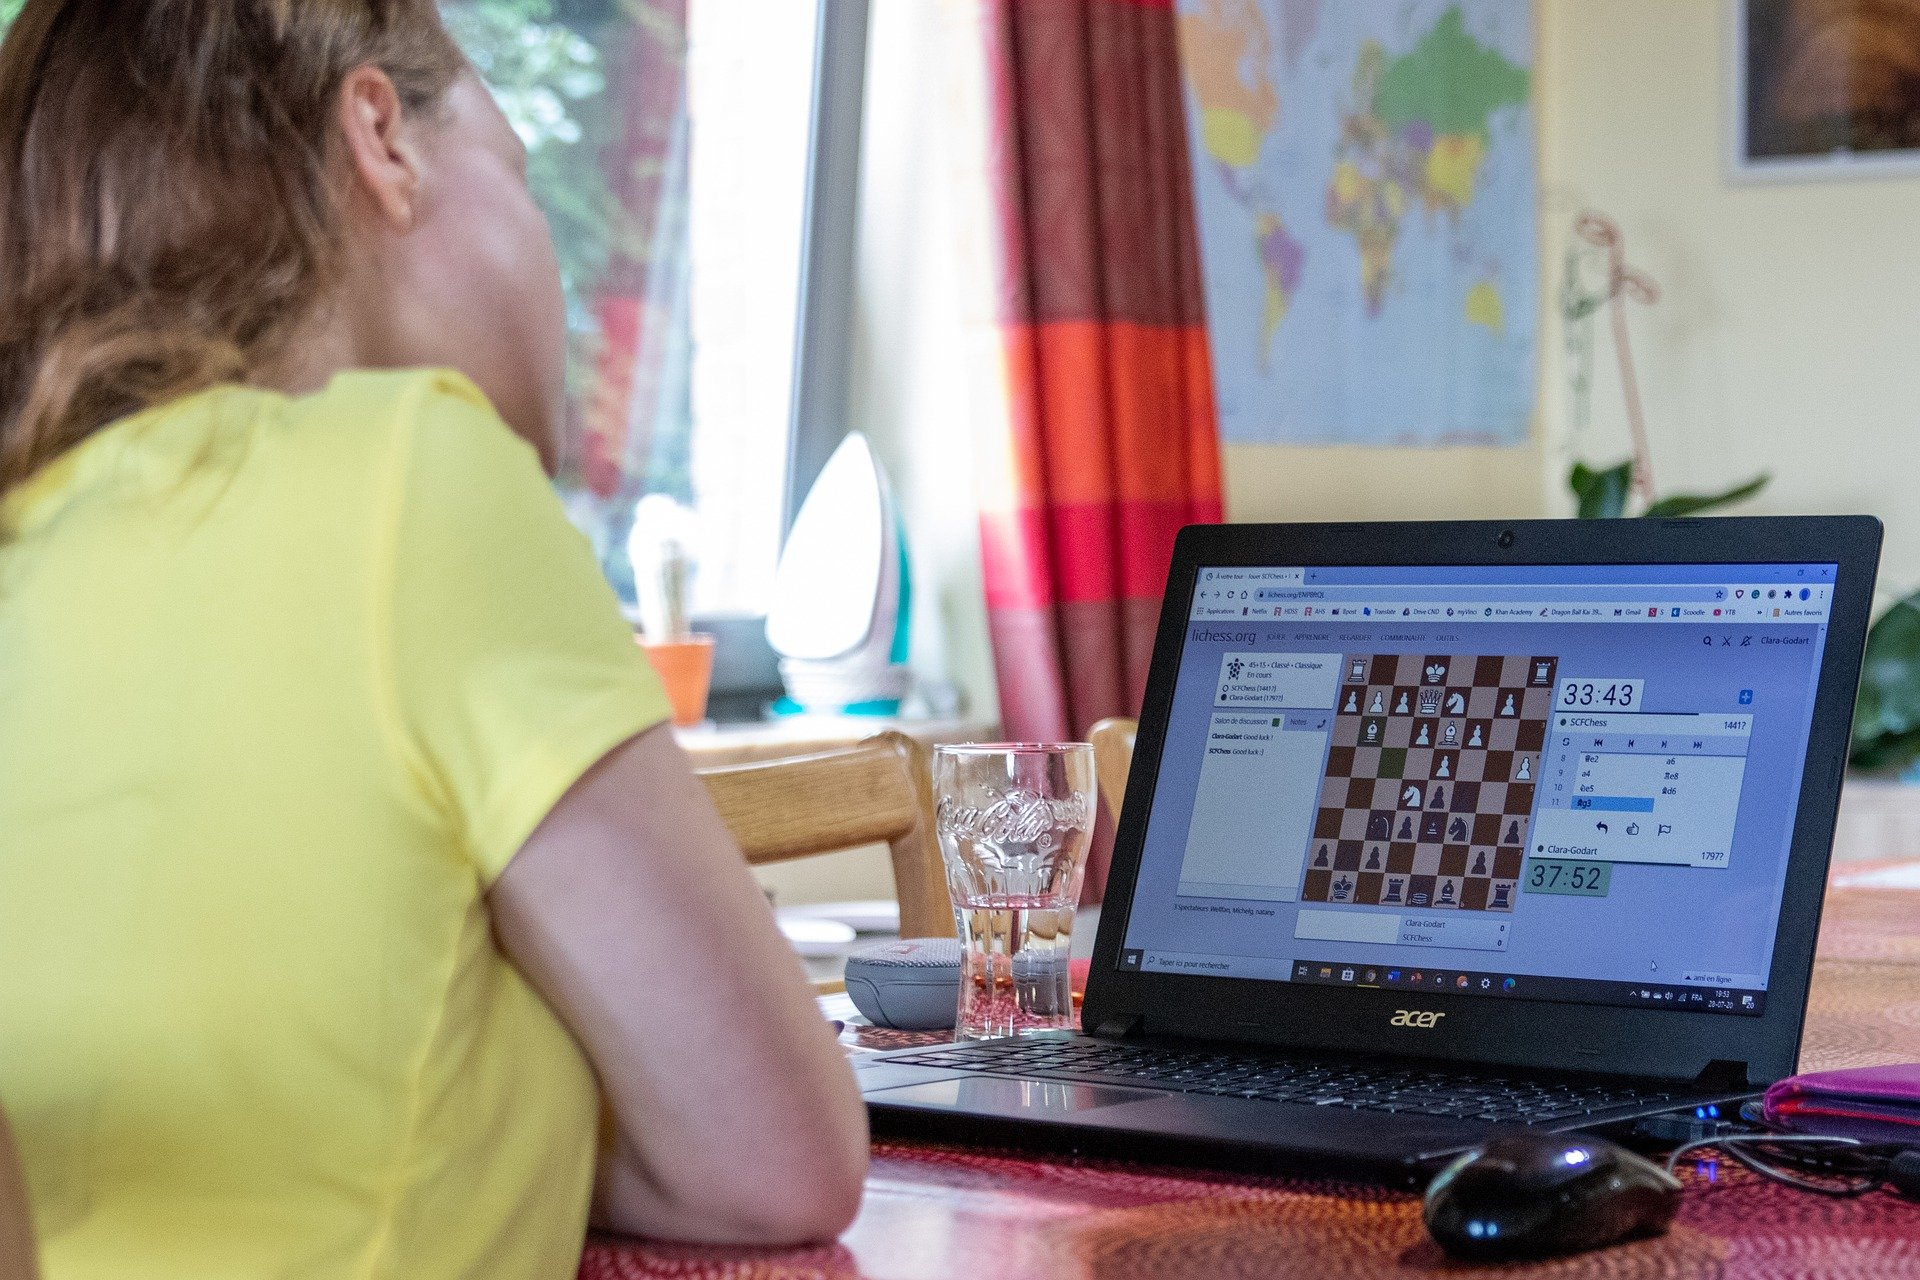 Pictured - A girl participates in an online Chess Tournament   Source: Pixabay